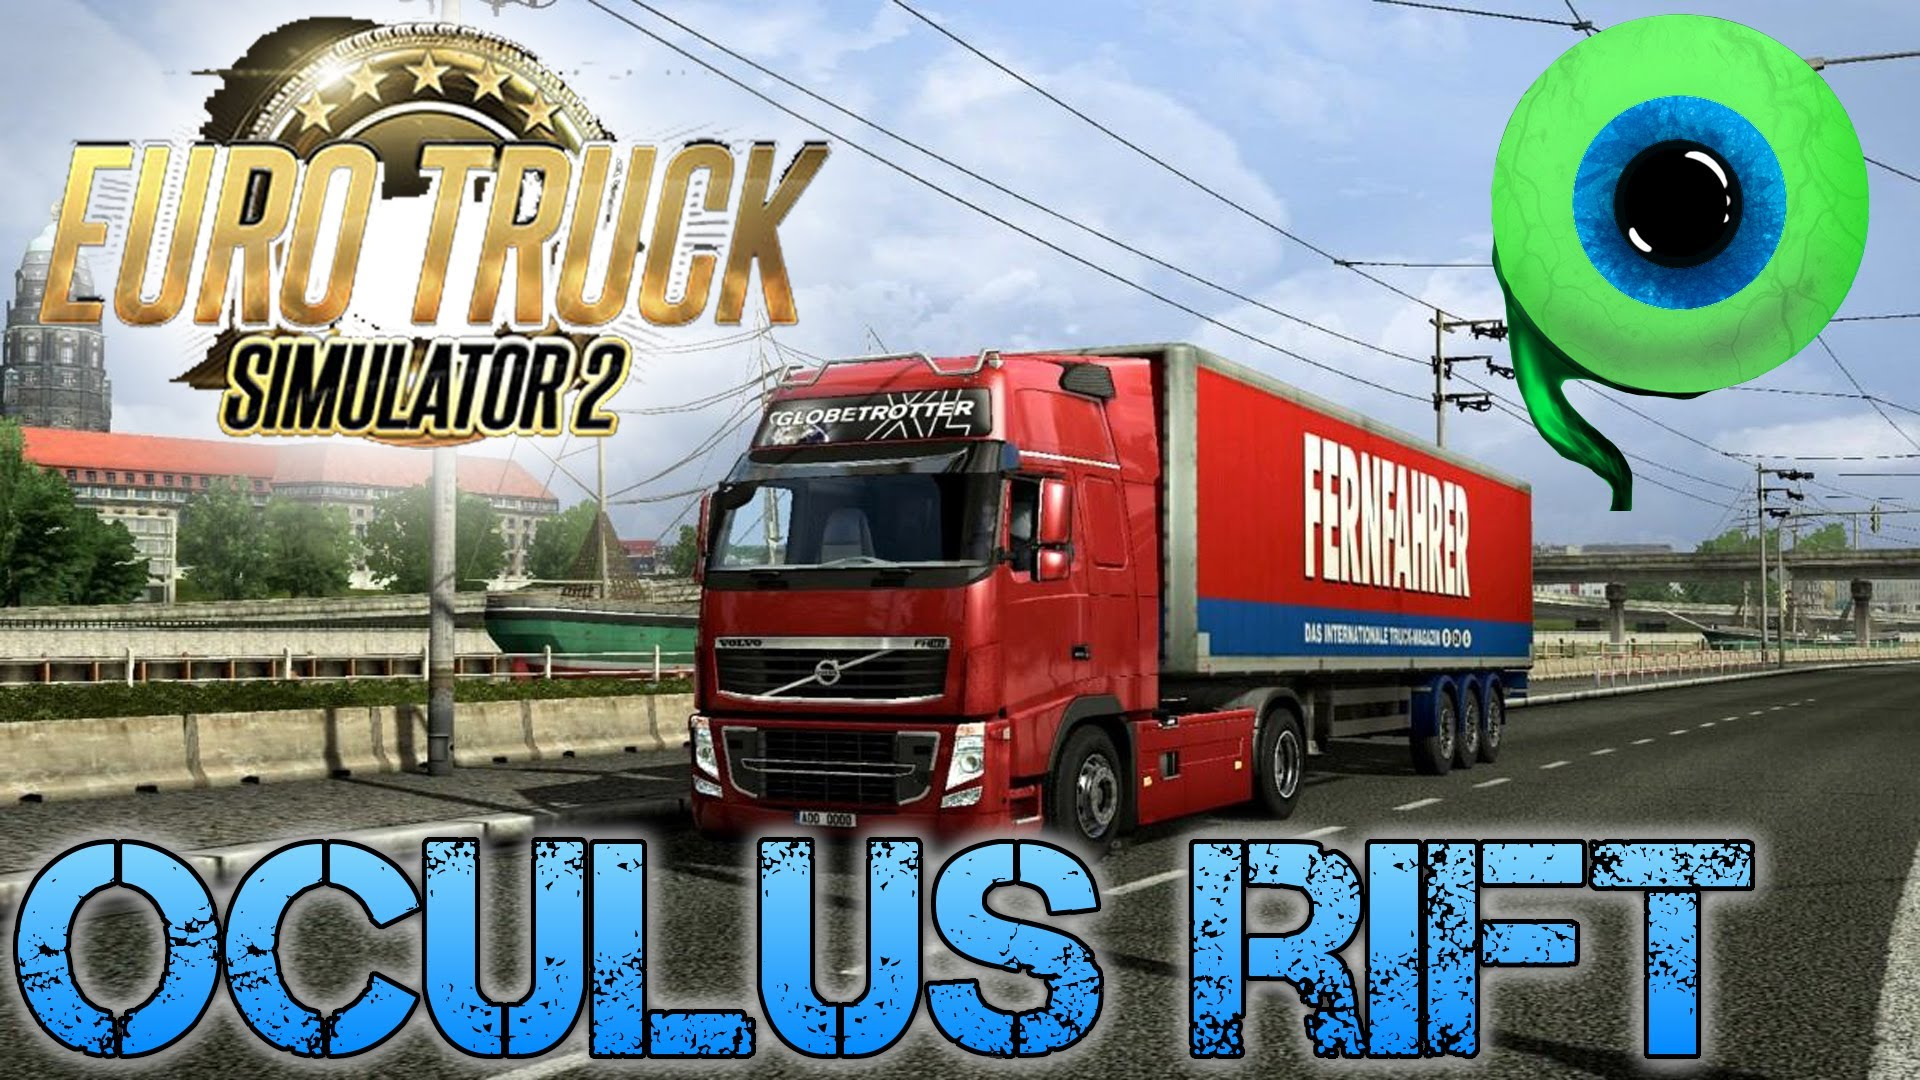 Euro Truck Simulator 2 with the OCULUS RIFT